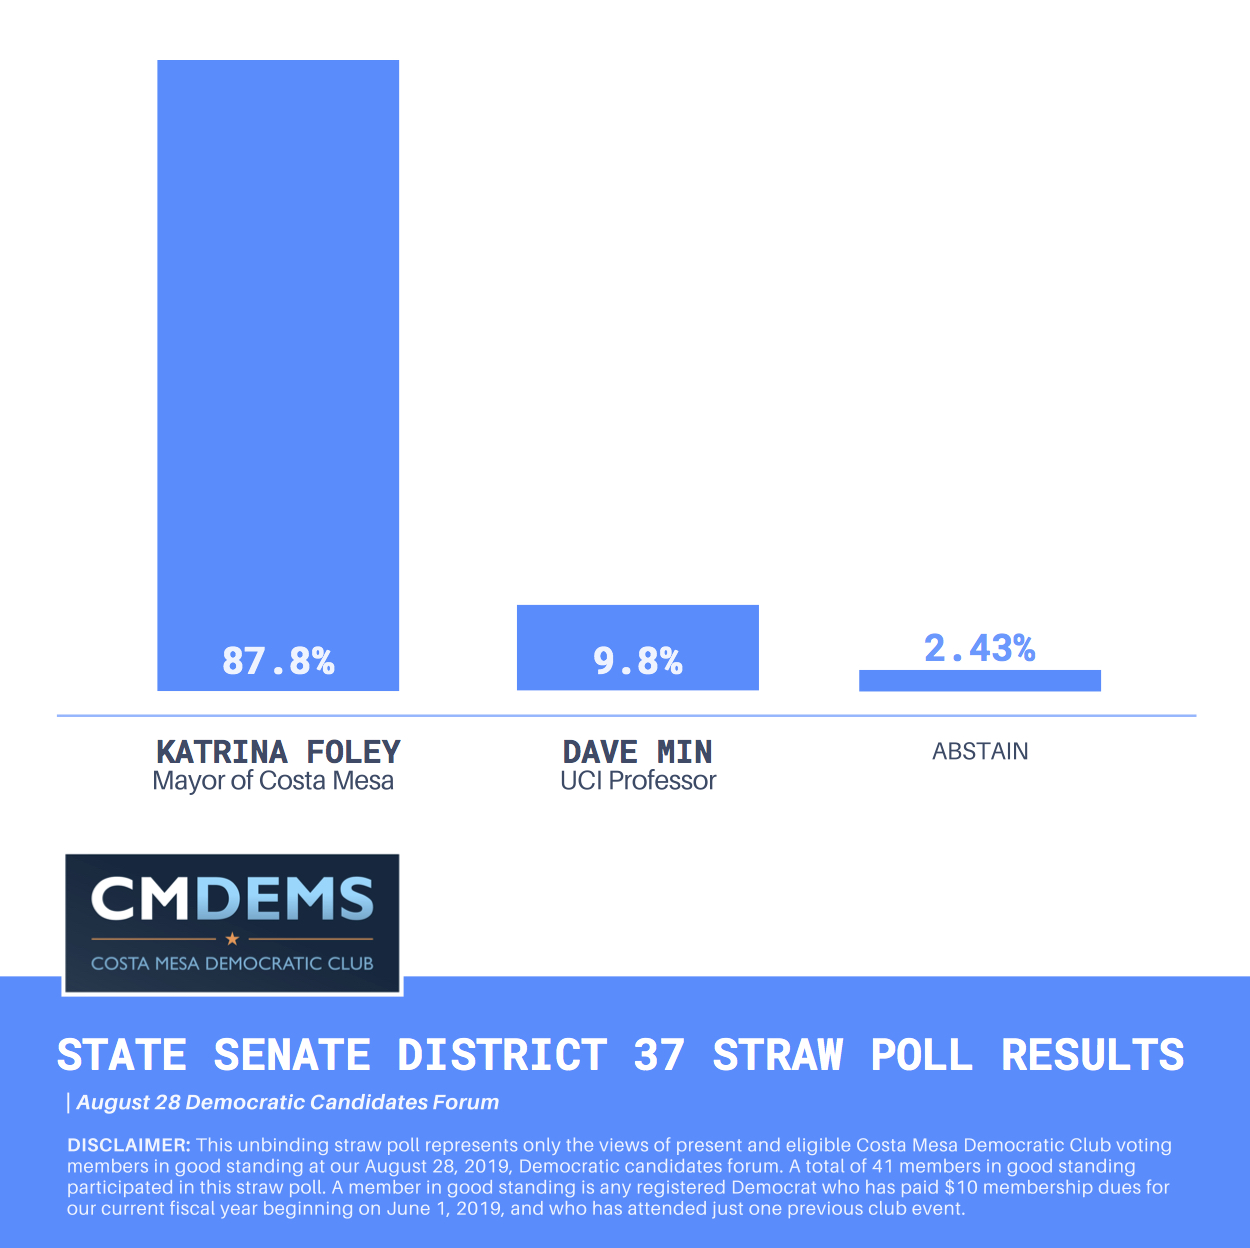 Costa-Mesa-Democrats-August-28-2019-Democratic-State-Senate-District-37-Straw-Poll-Results-from-State-Senate-District-37-Candidates-Forum-with-Mayor-Katrina-Foley-and-Dave-Min